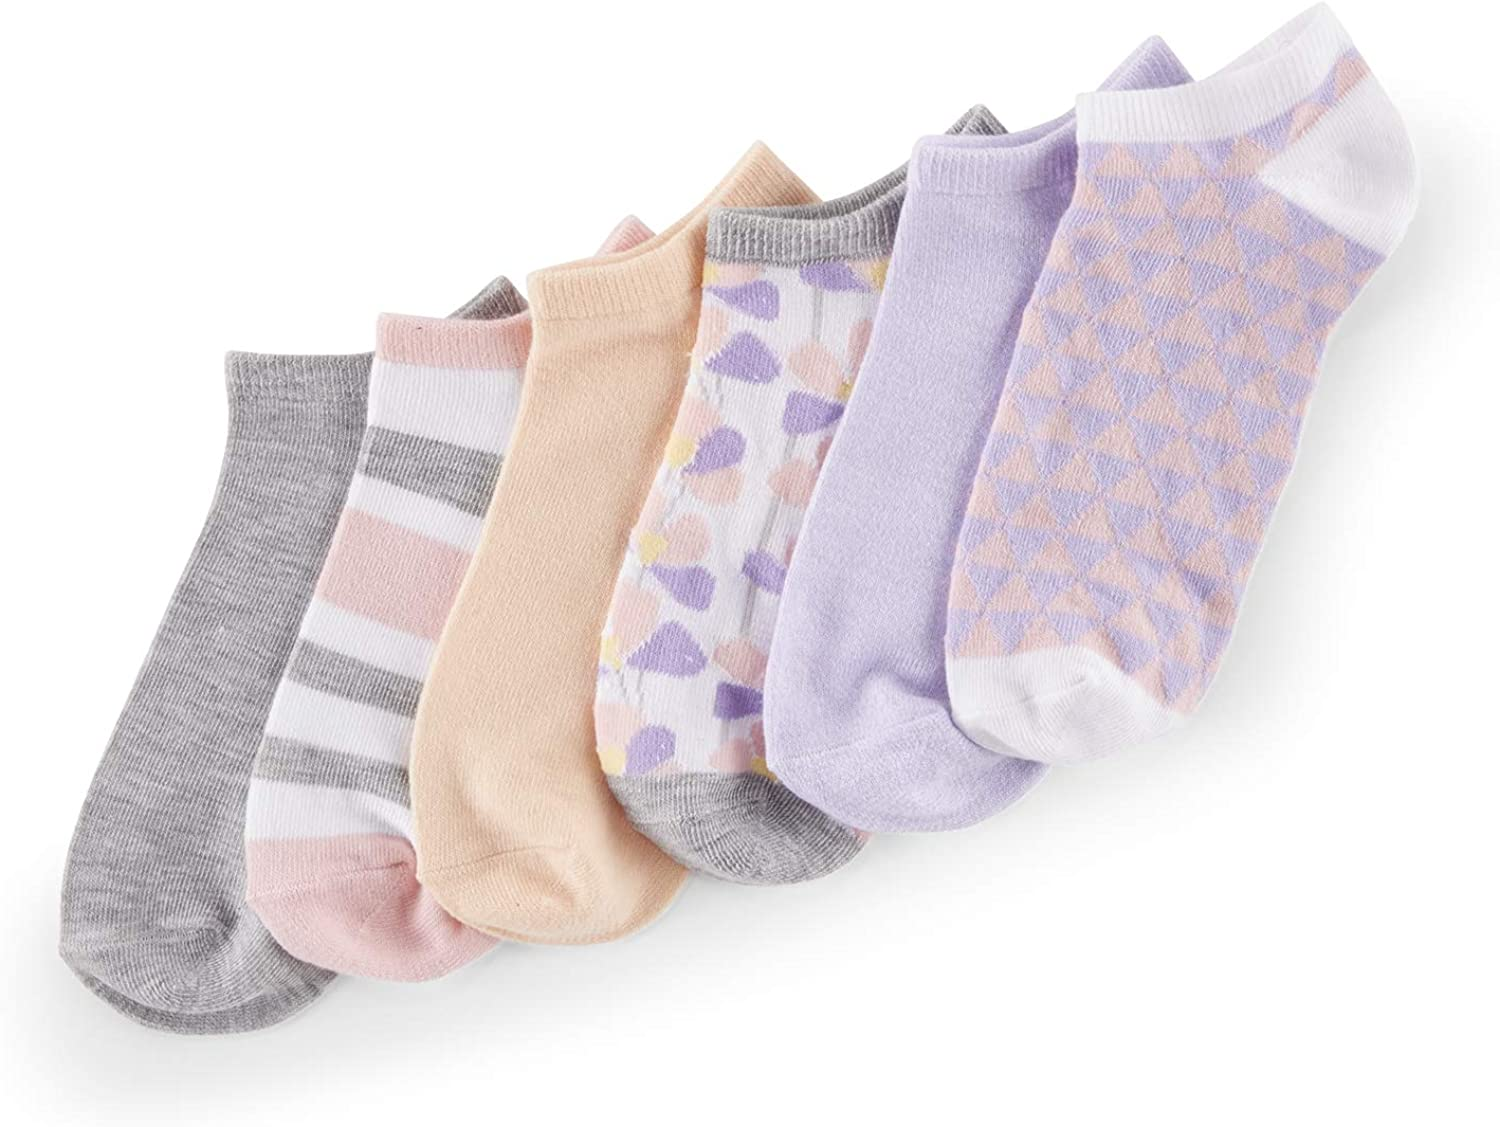 No Nonsense Women's Color Expressions No Show Liner, 6 Pair Pack, Asst 3: White Multi, Peach Puff, White Multi, Light Heather Grey, Thistle Marl, Tutu Multi, One Size